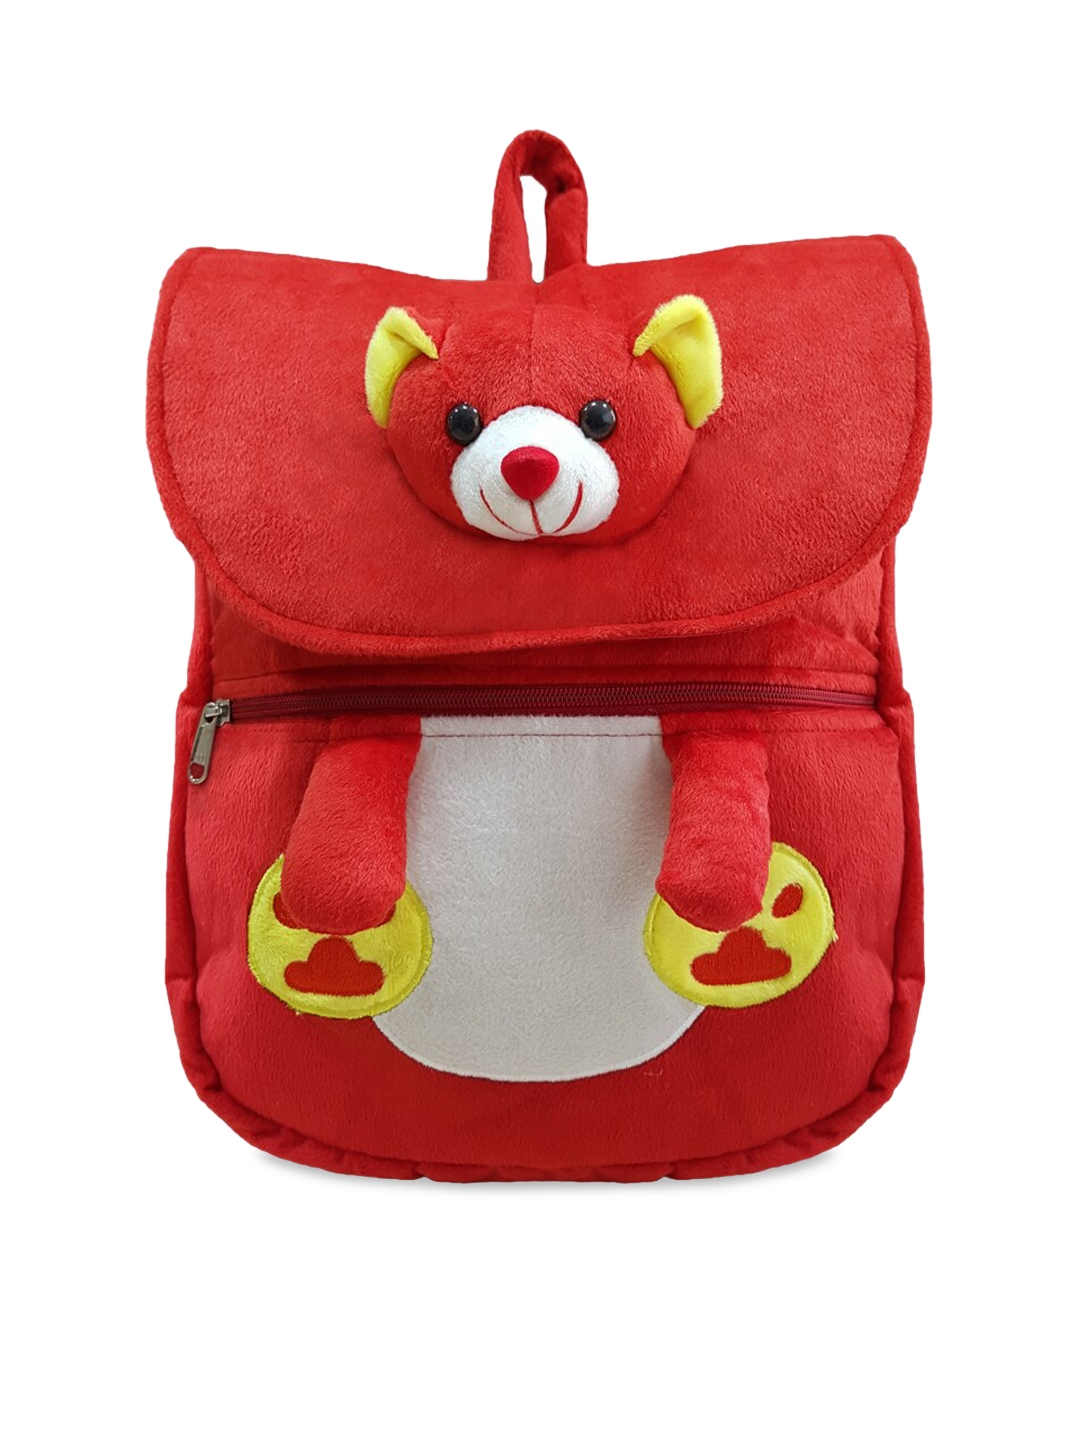 Ultra Kids Red Teddy Face Plush Soft Backpack Toy